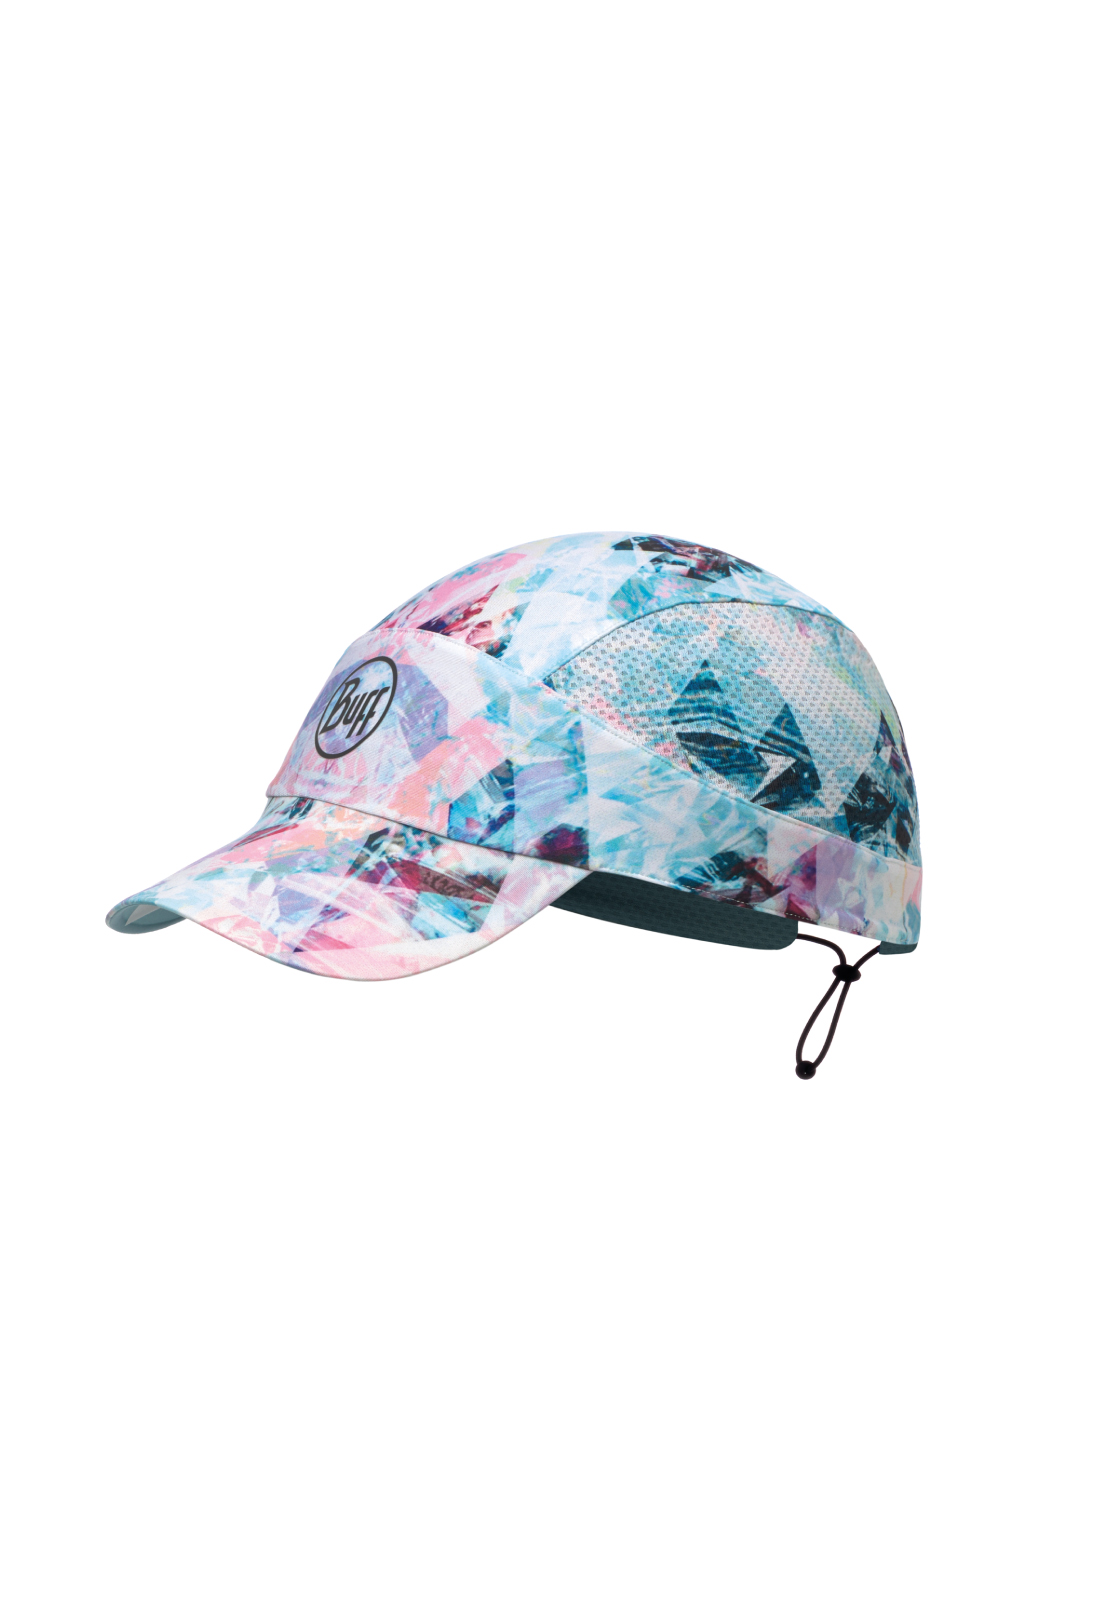 Pack Run Cap R-Irised Aqua